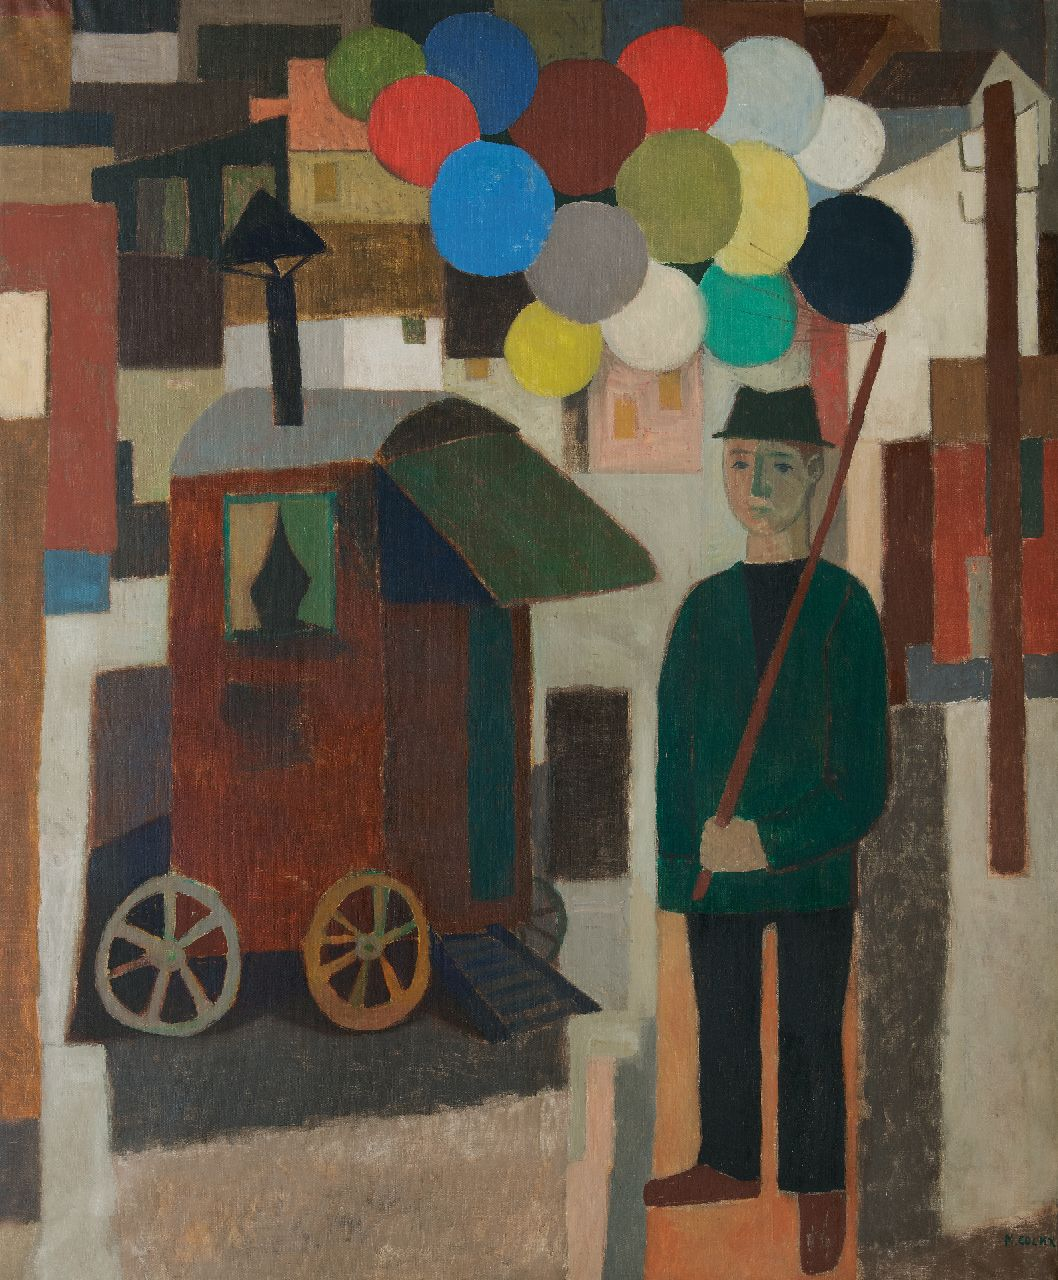 Cockx M.  | Marcel Cockx | Paintings offered for sale | Balloon seller, oil on canvas 178.9 x 150.3 cm, signed l.r.